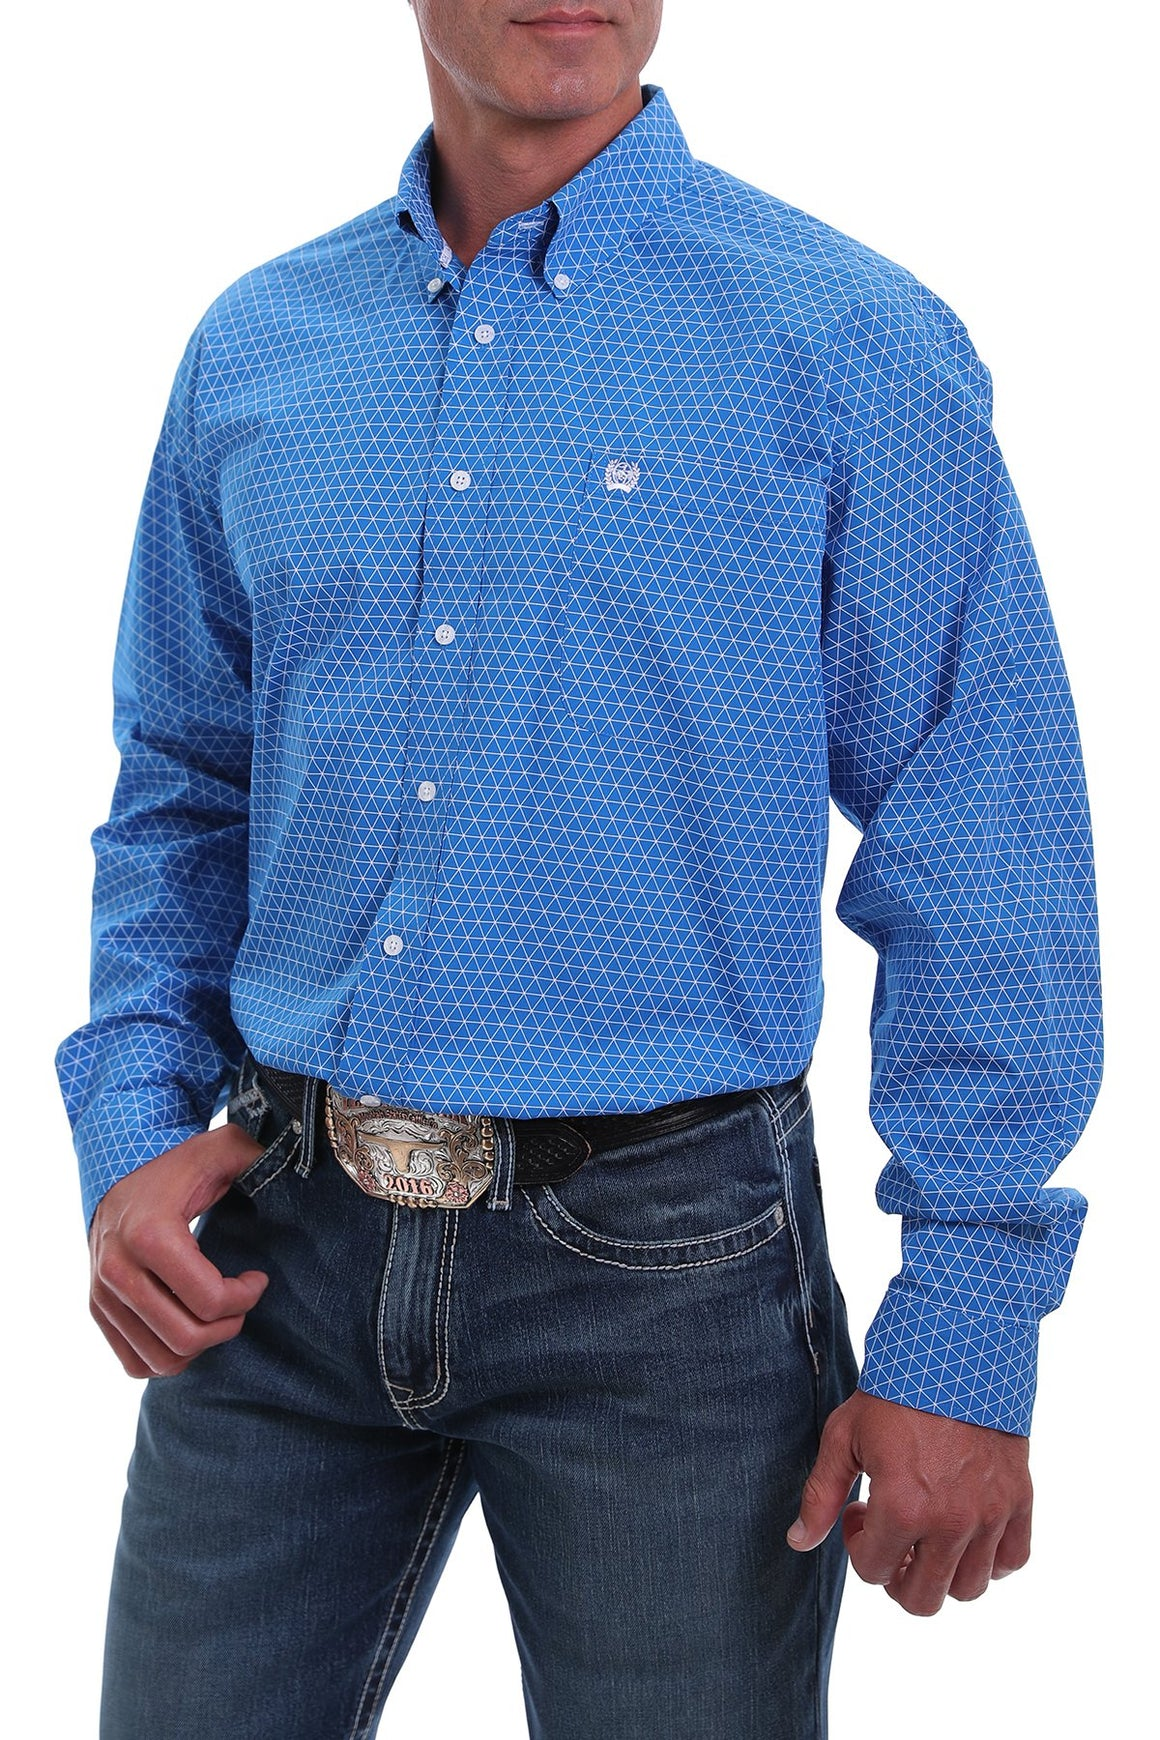 Cinch Mens Royal Blue/White Geometric Print Western Button-Down Shirt